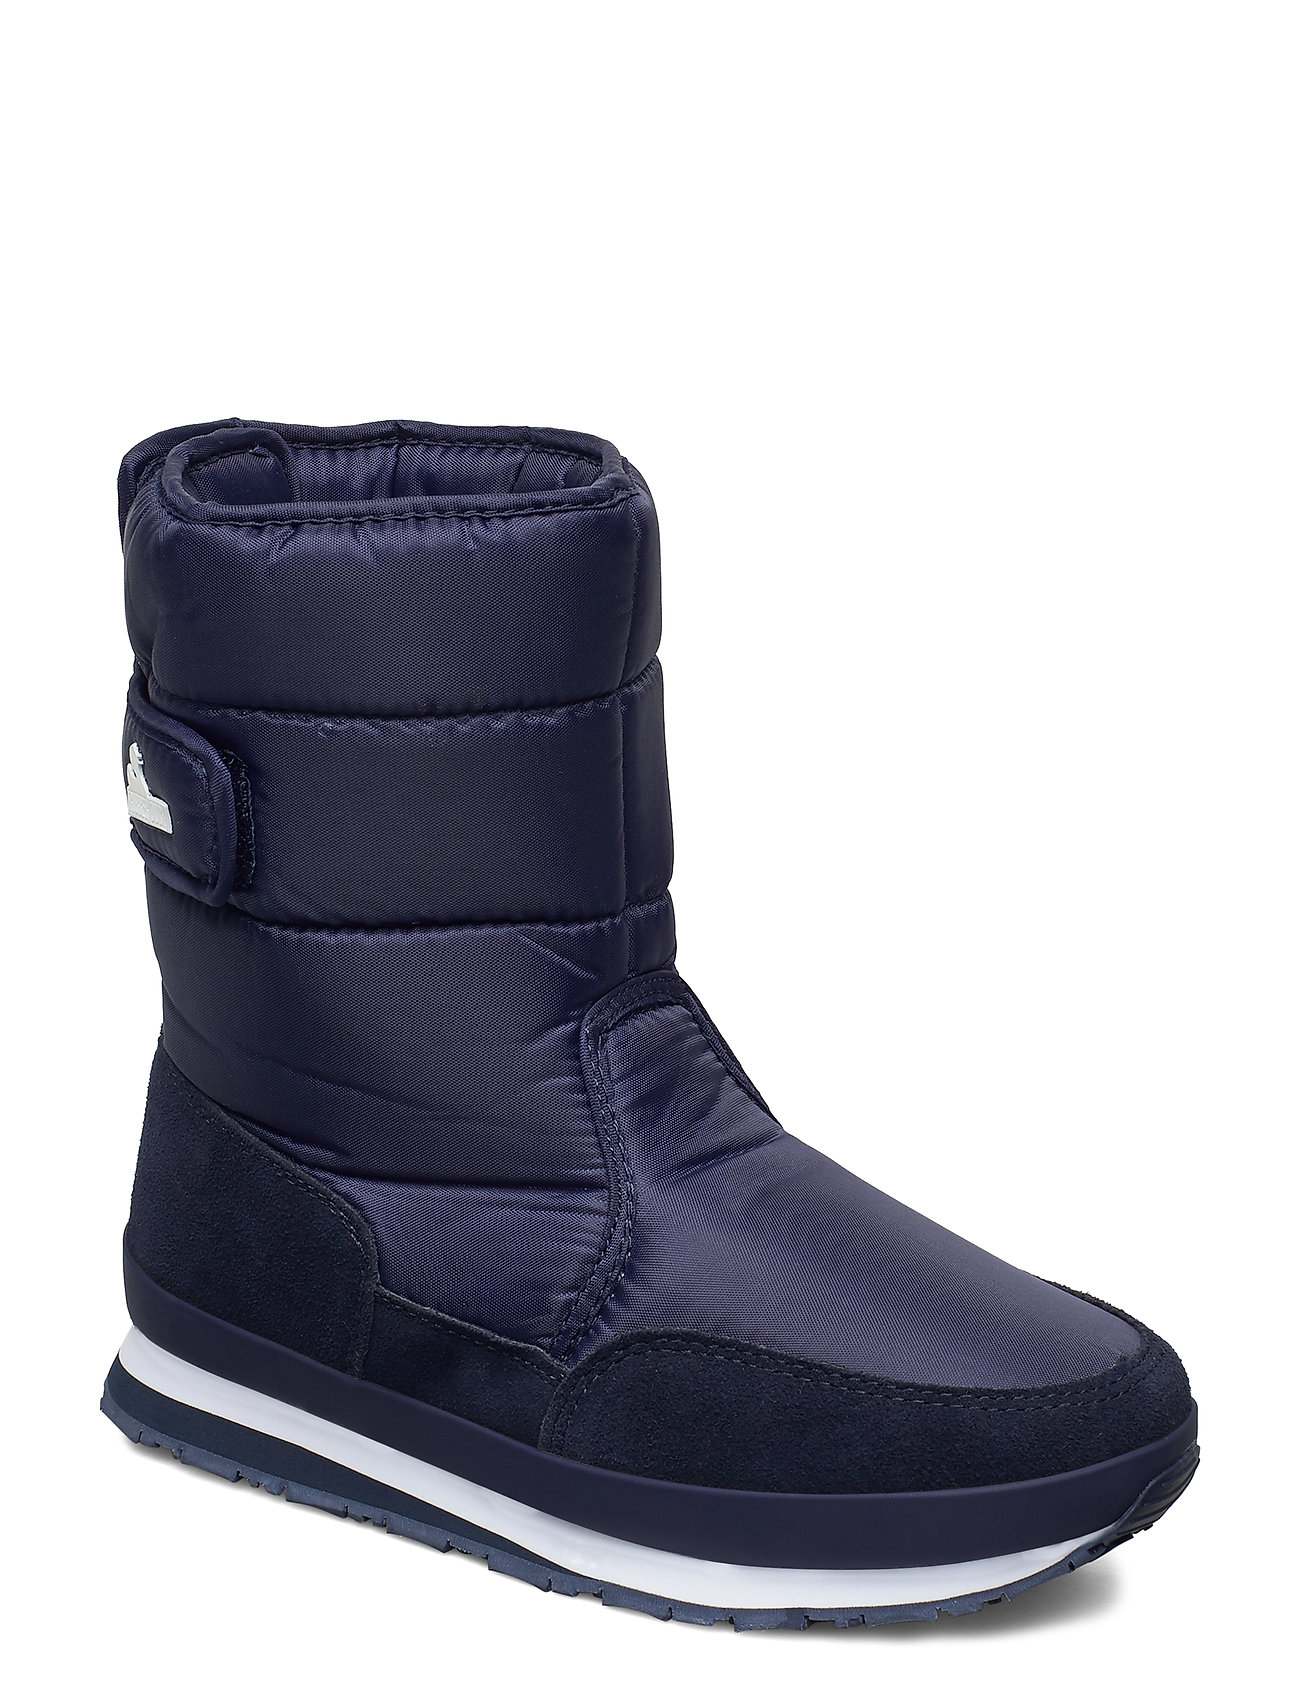 Image of Rd Nylon Suede Solid Shoes Boots Ankle Boots Ankle Boot - Flat Blå Rubber Duck (3454942567)